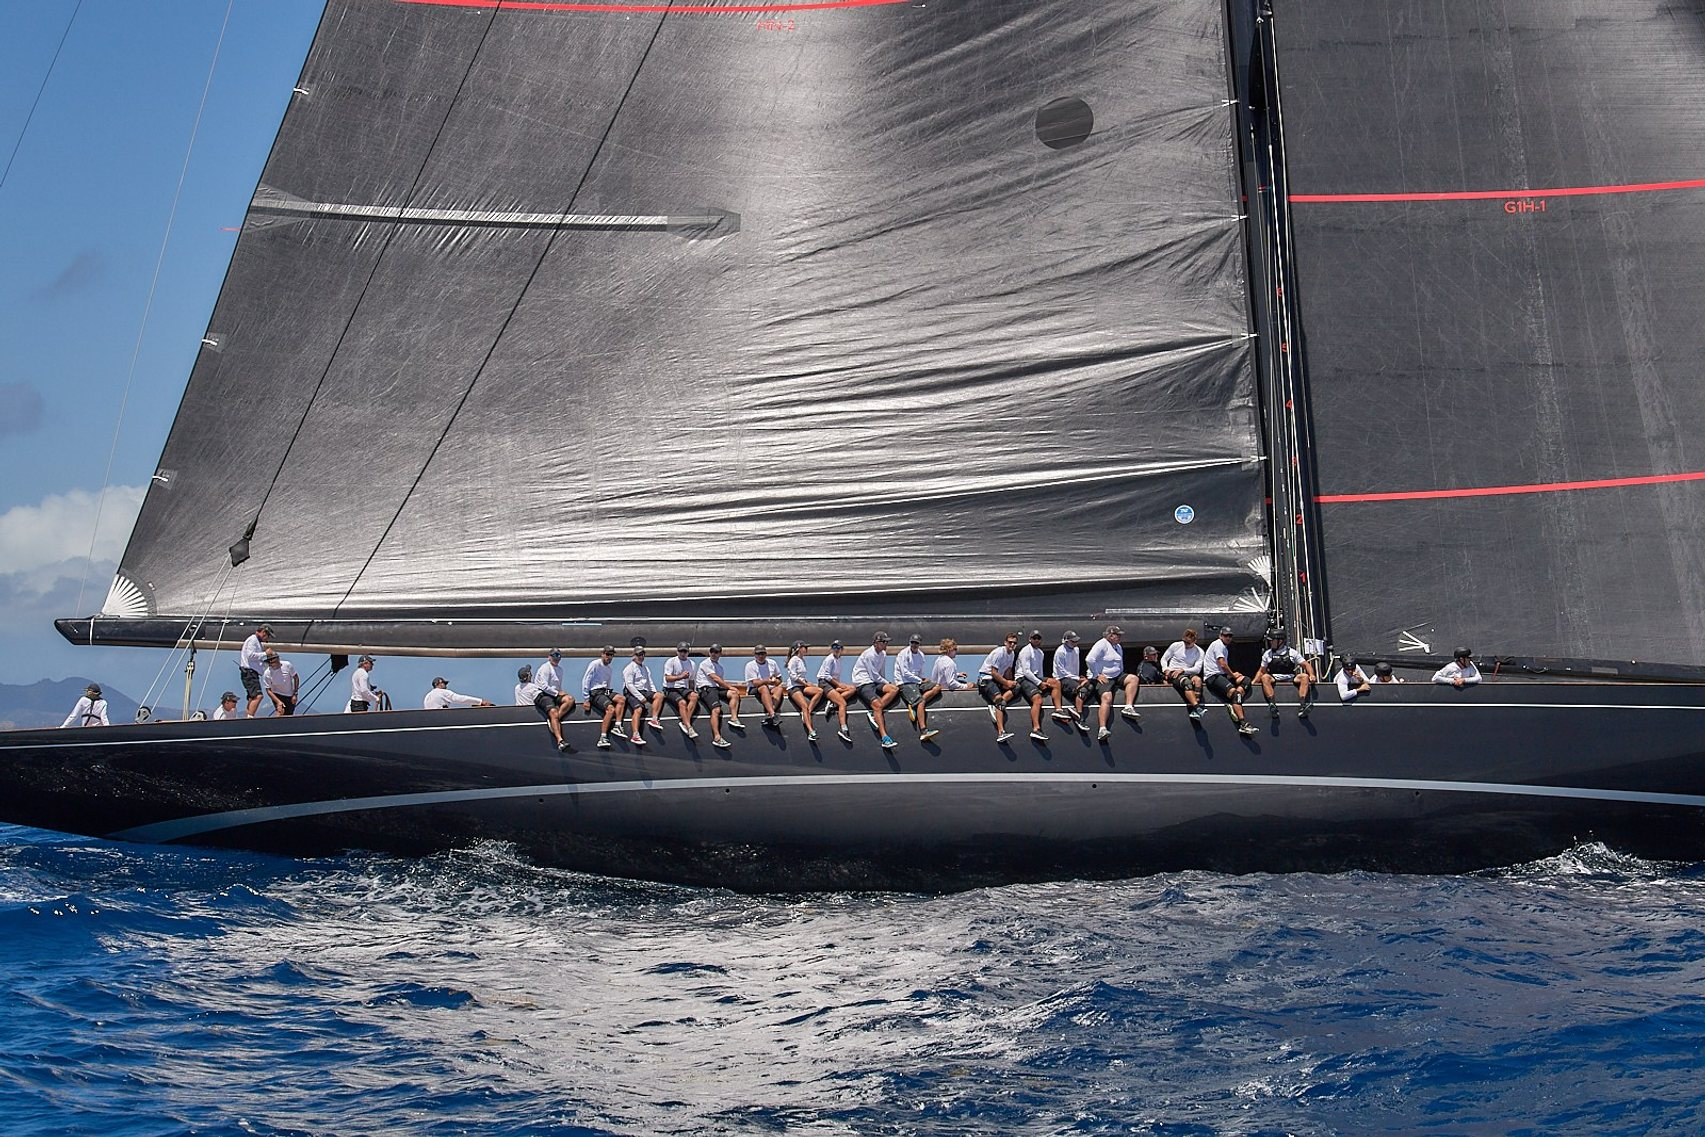 Sailors on yacht at St Barths bucket